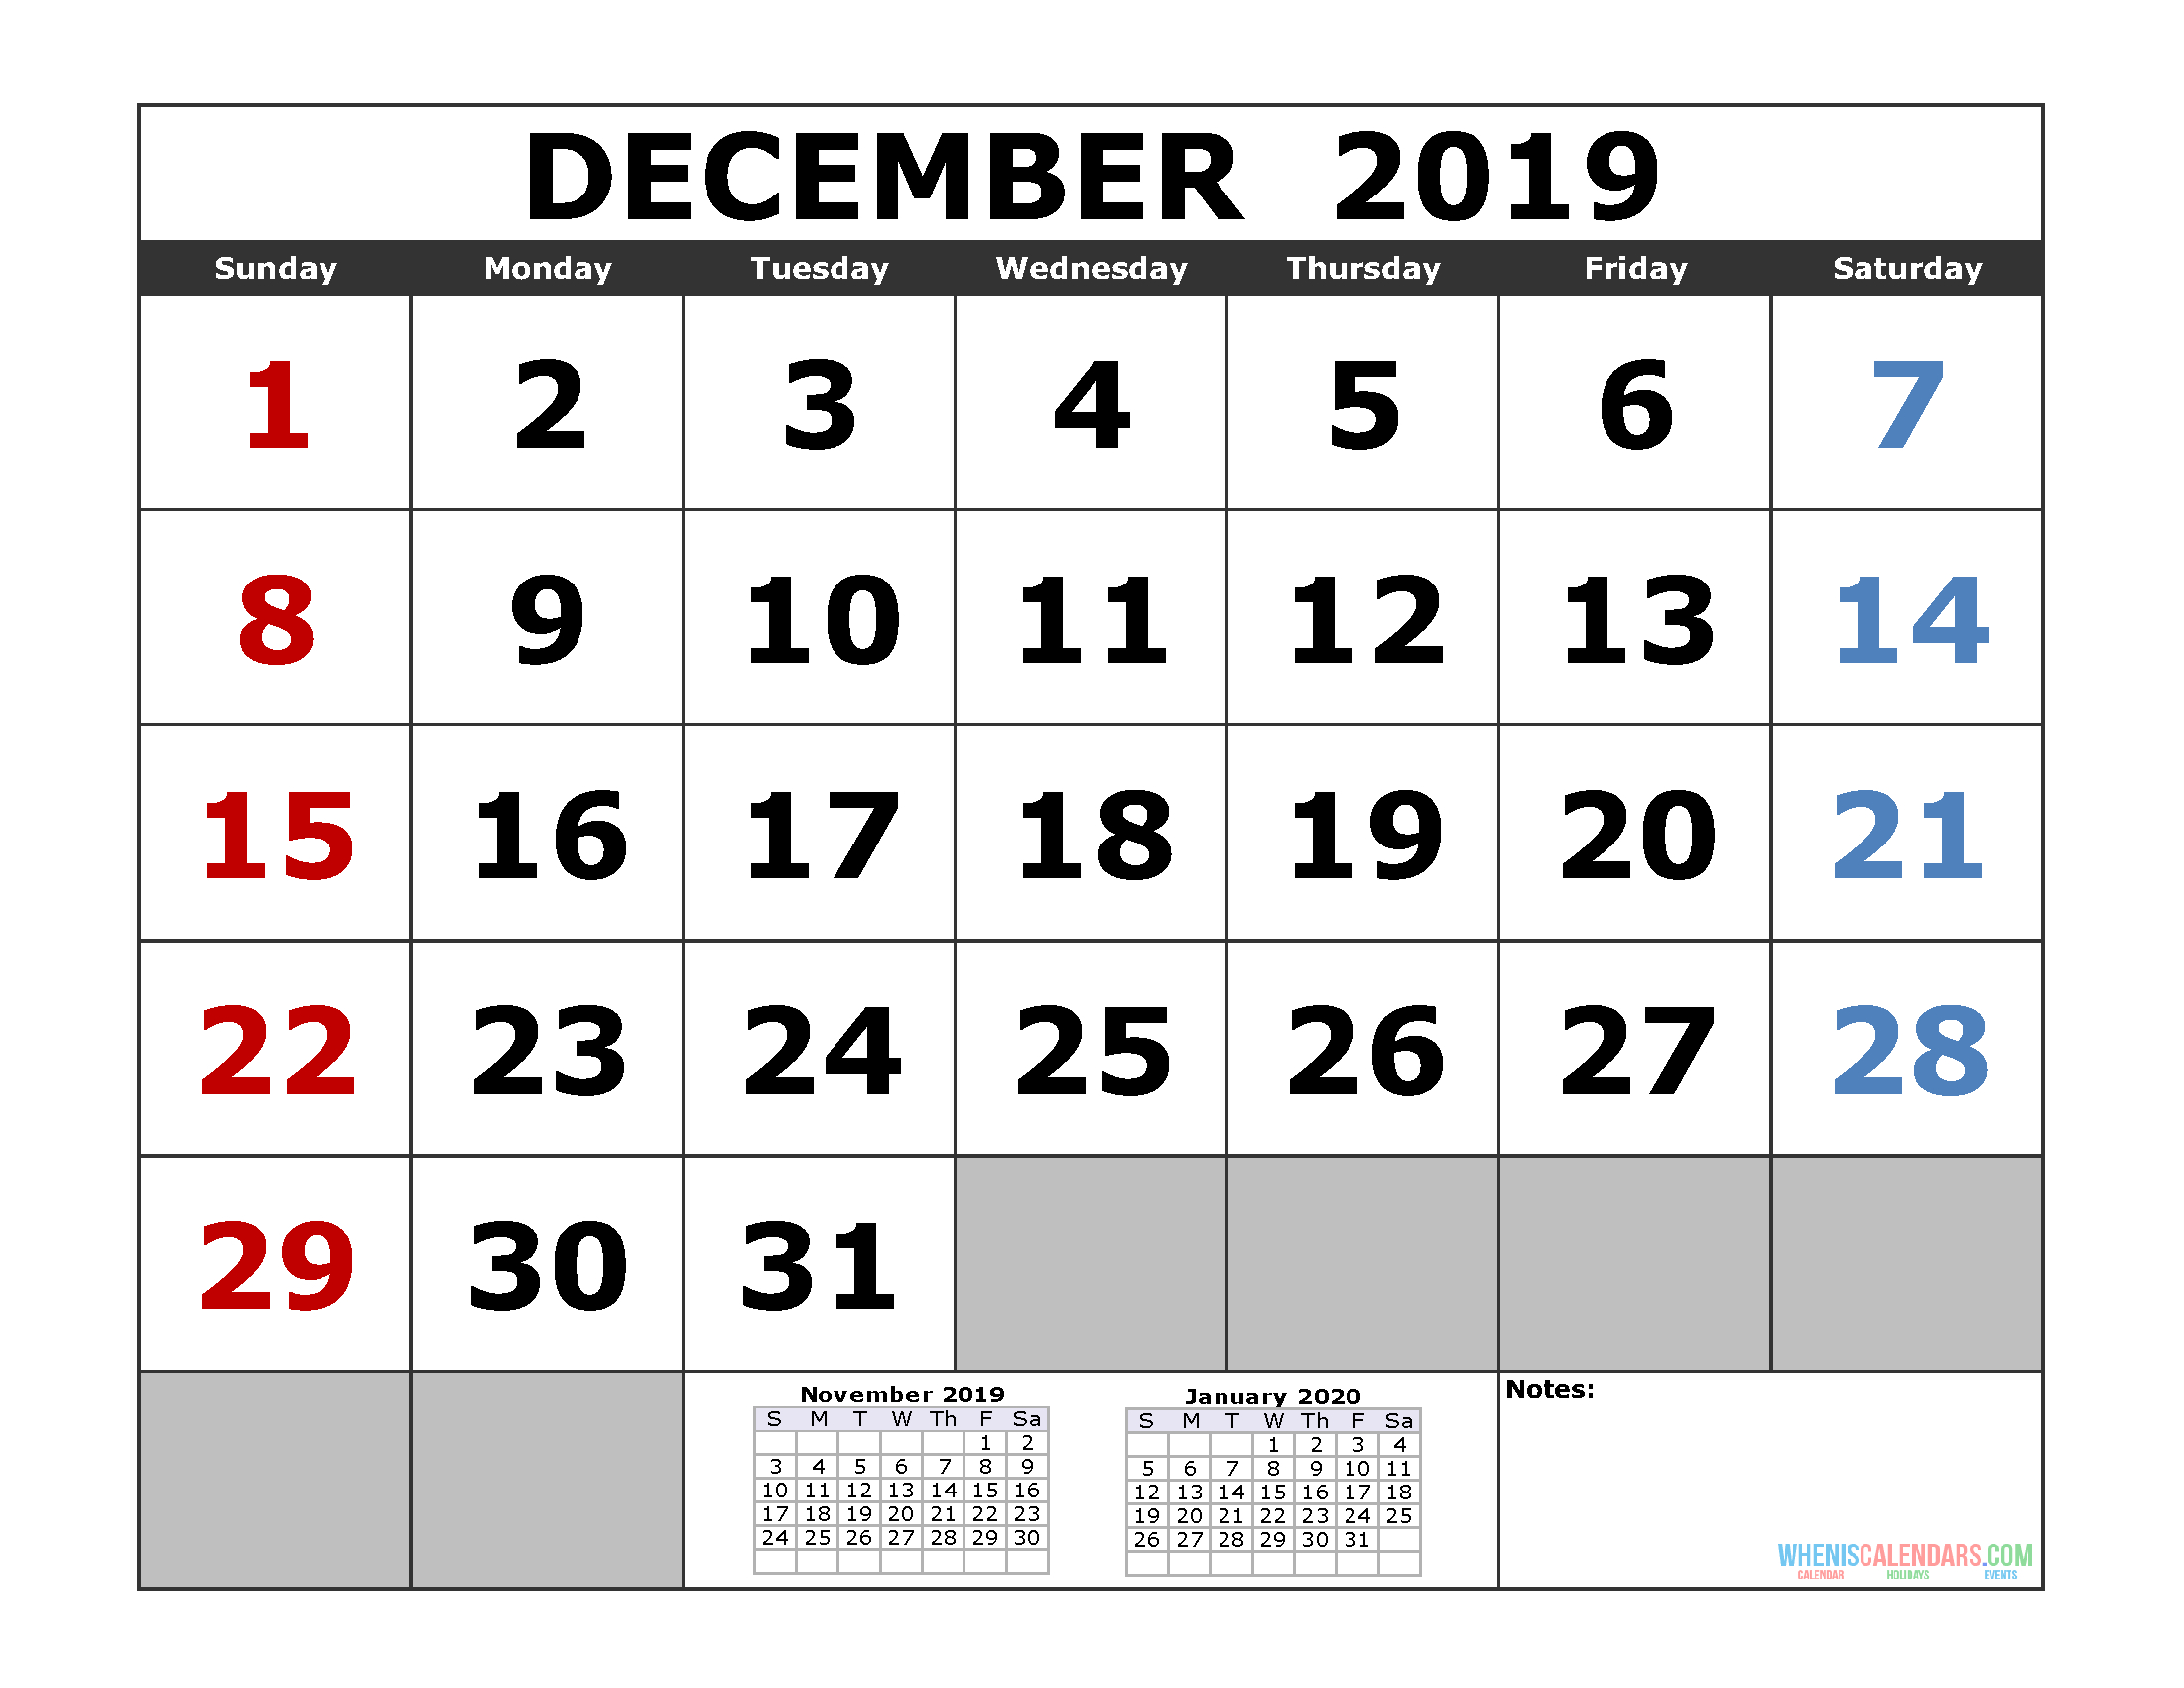 December 2019 Printable Calendar Template (3 Month Calendar with regard to Two Month Calendar November December 2020